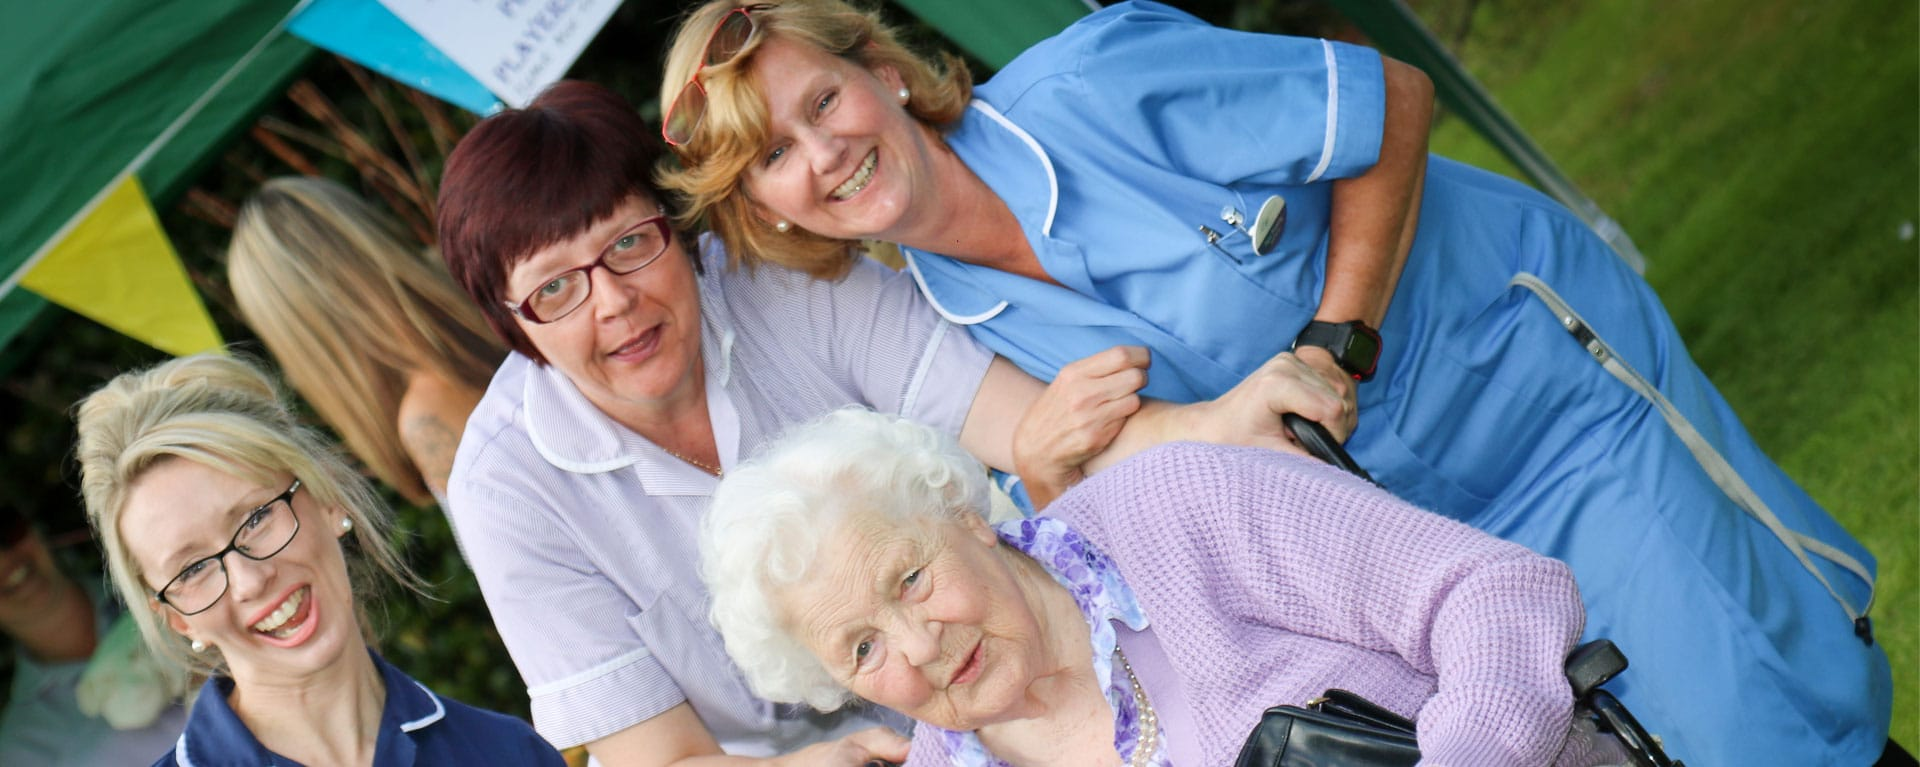 Group of residents and nurses posing for a picture at Laurel Care Home fete